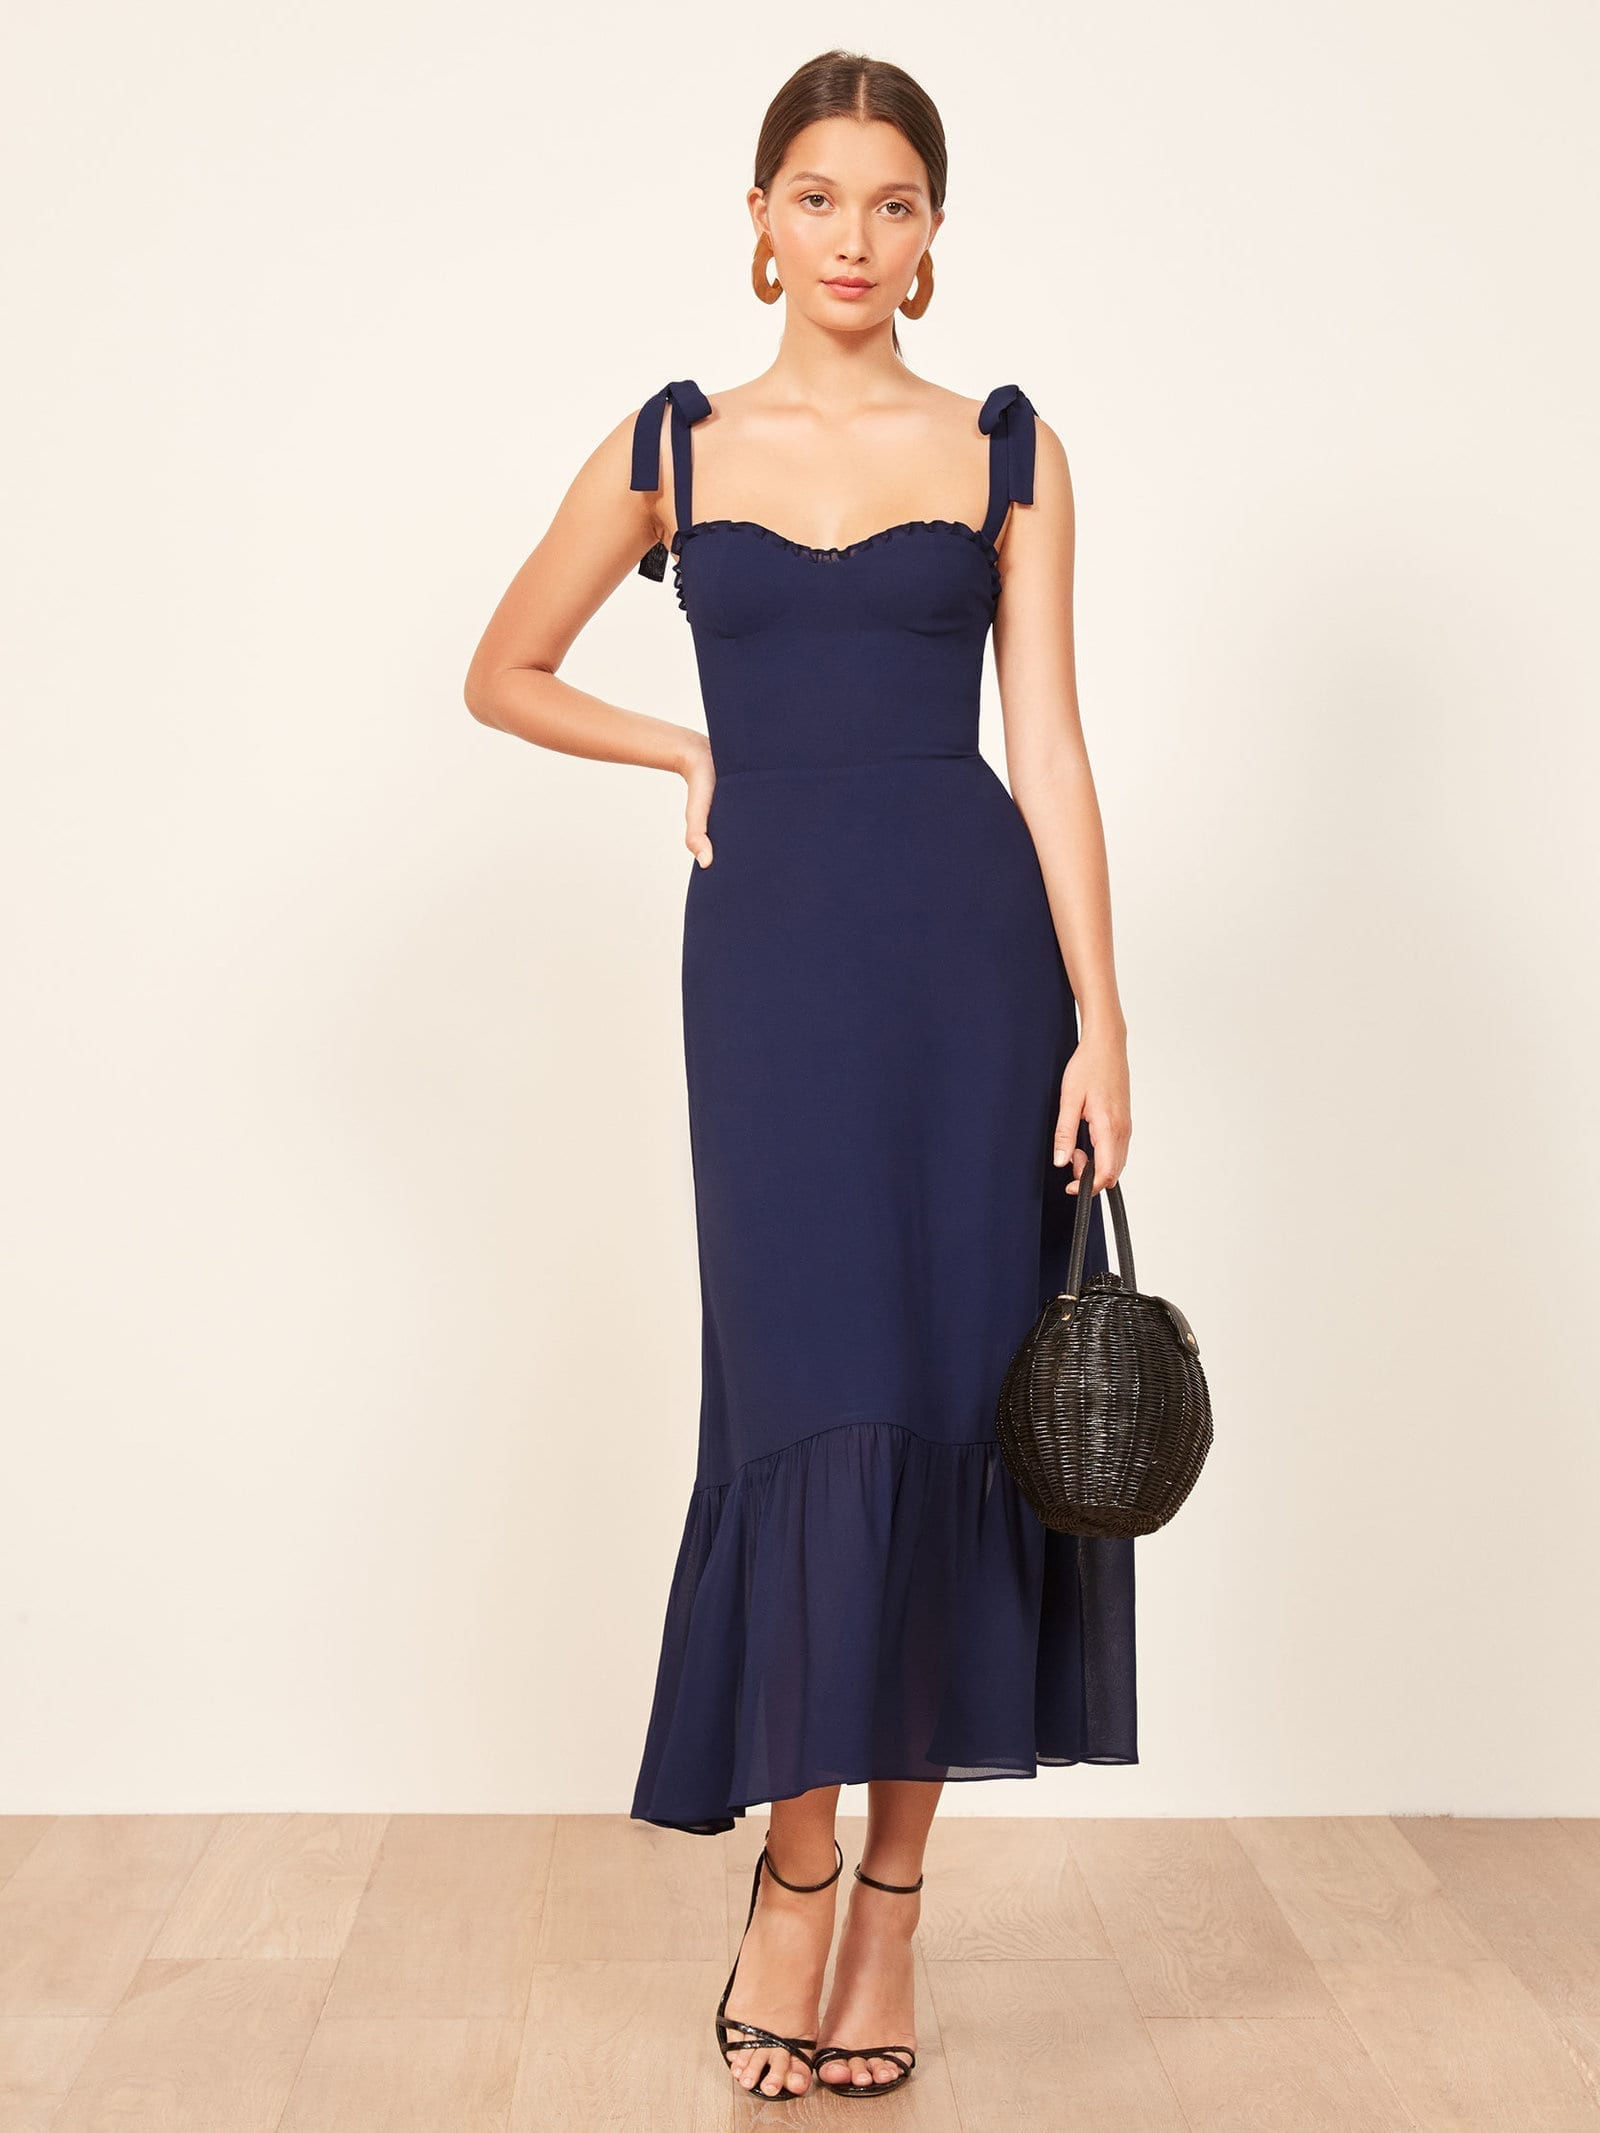 Reformation Nikita Navy Dress